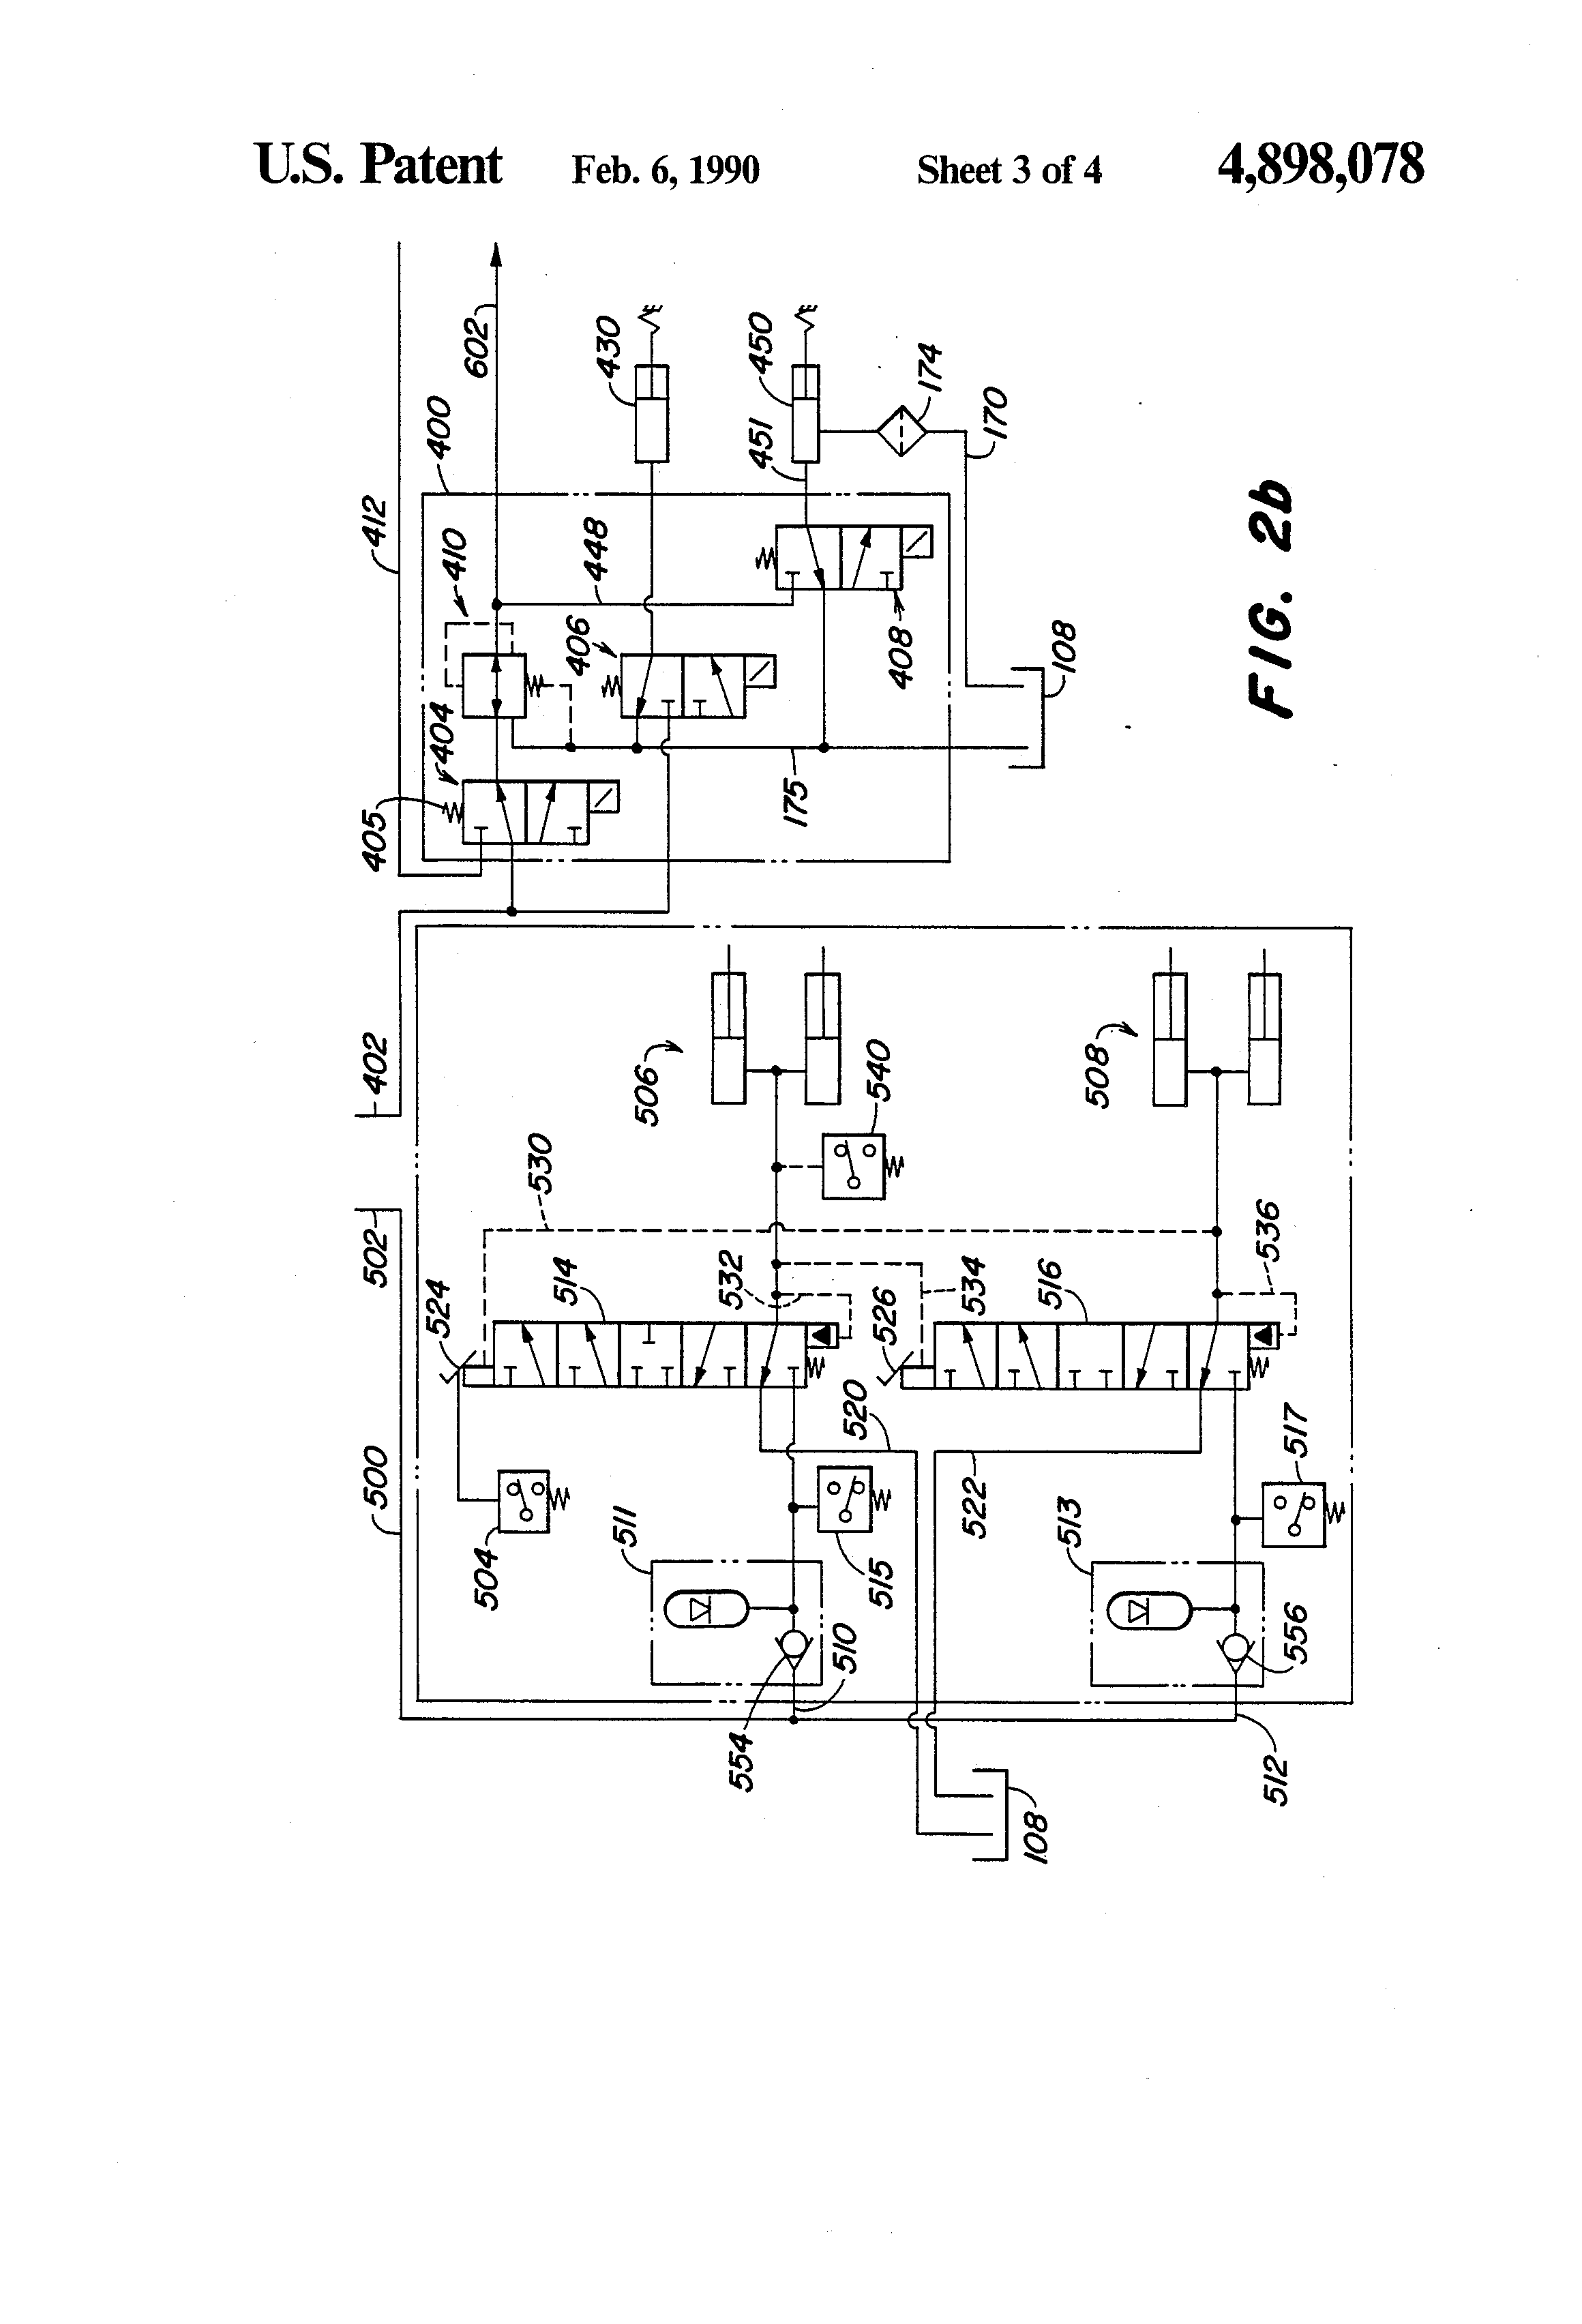 US5024140 likewise Peugeot 307 Manual Fuse Box moreover John Deere 310c Loader Wiring Diagram furthermore US4898078 in addition OMMT1758 D413. on for a john deere 410d backhoe wiring diagram